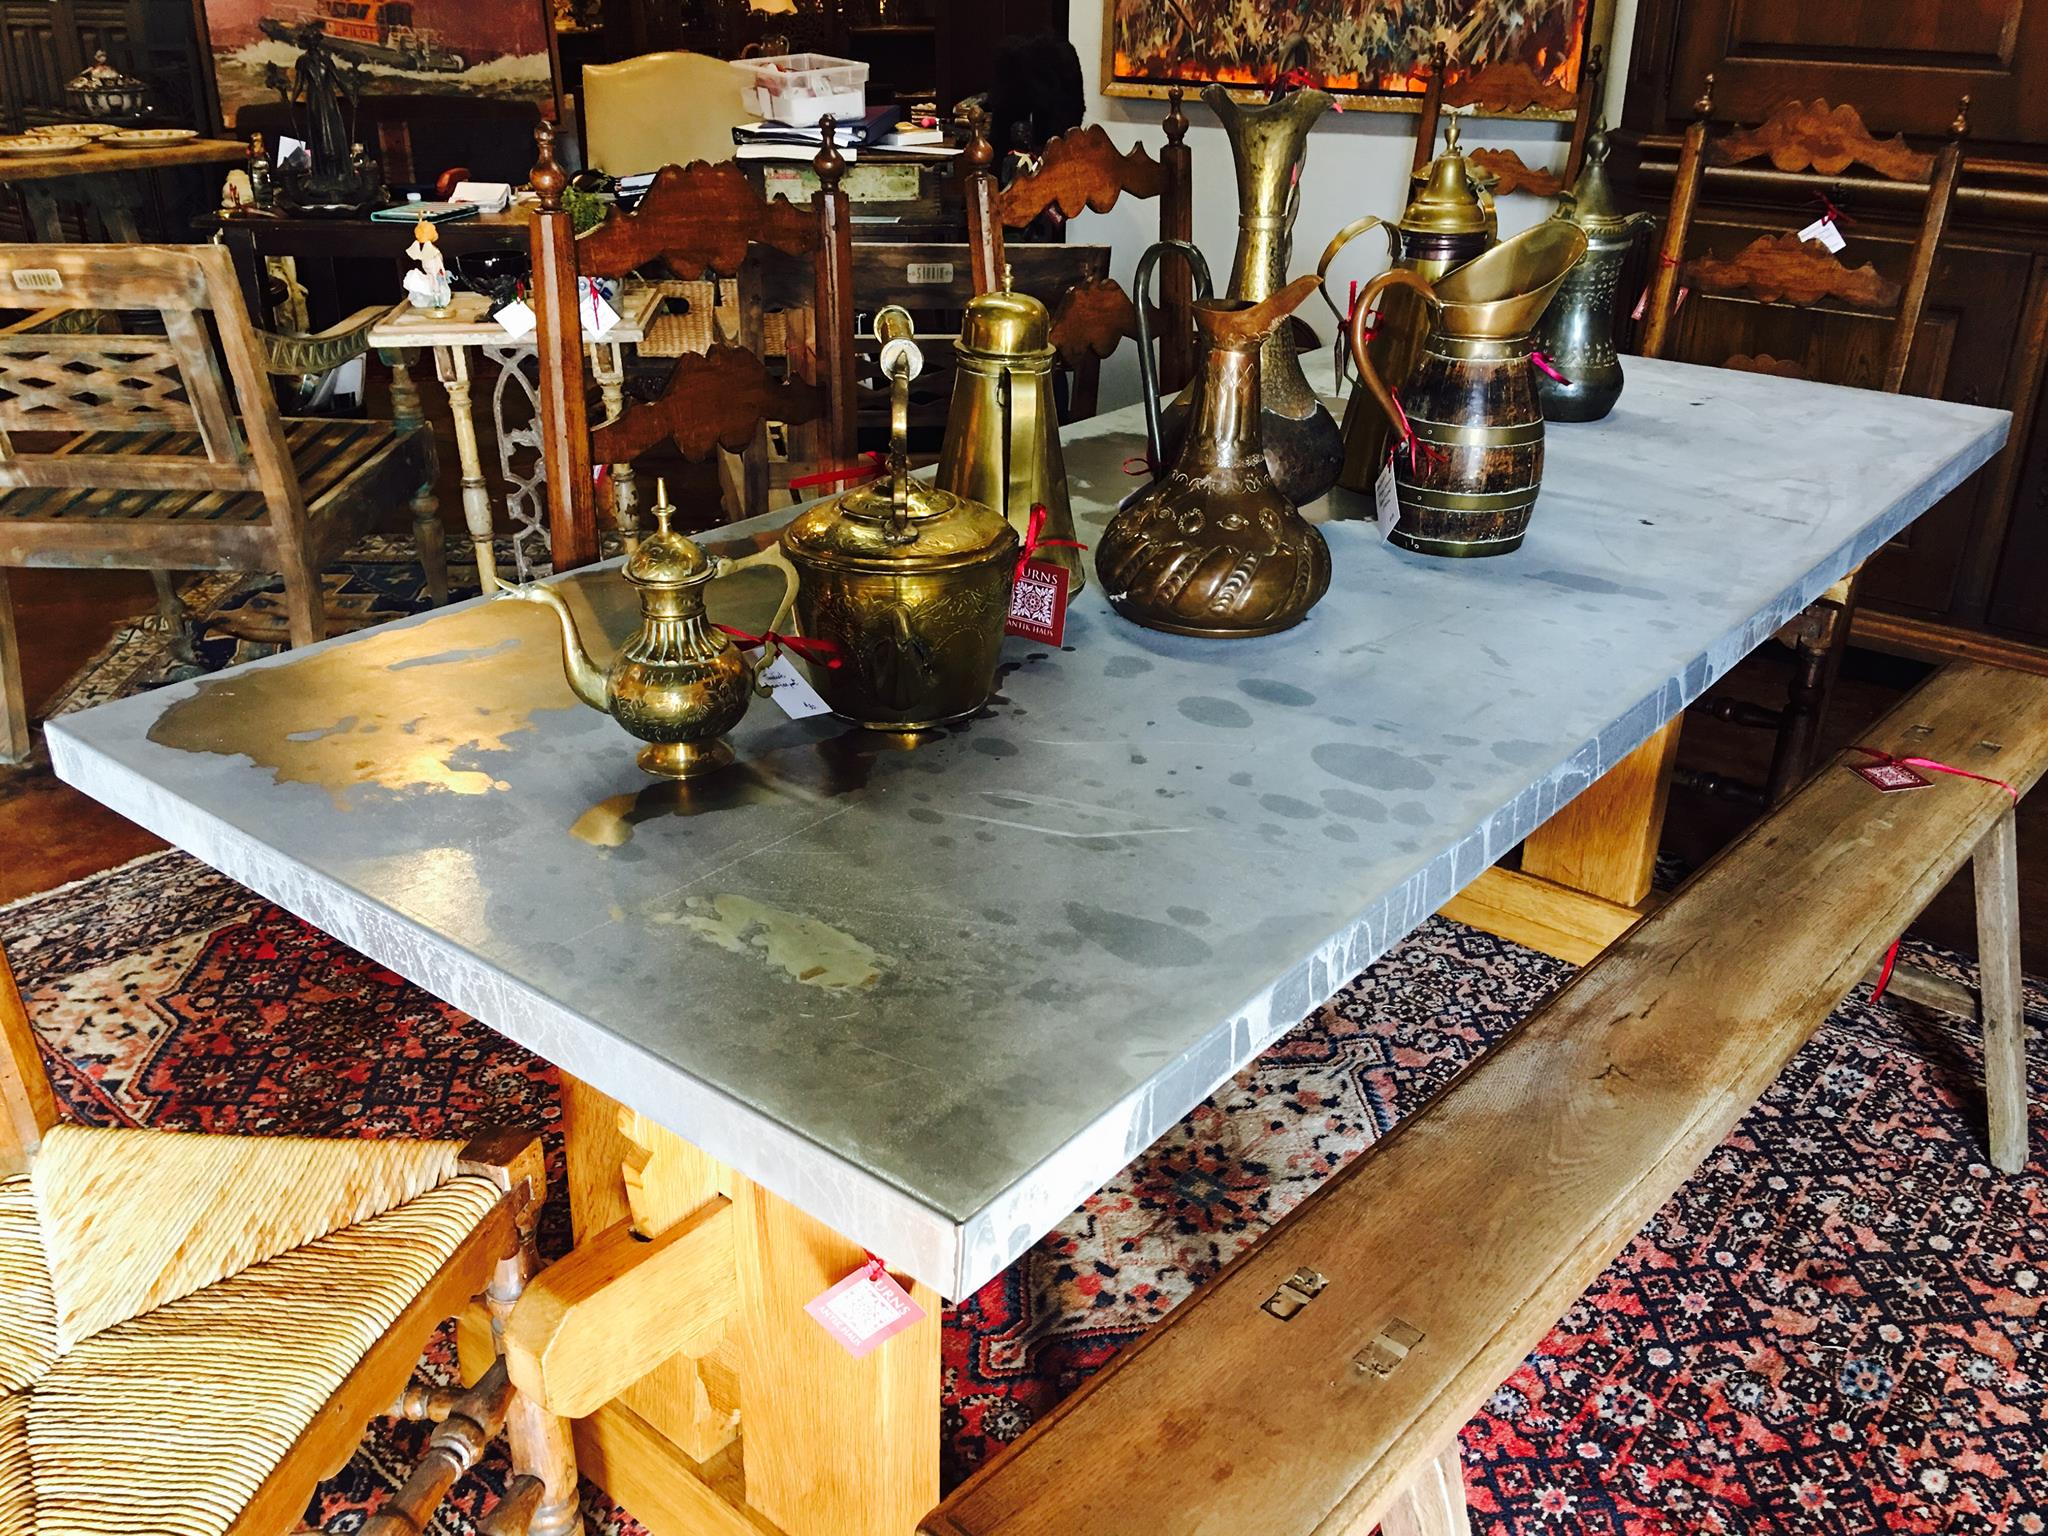 Just arrived, Zinc Topped Table and a collection of brass and copper teapots!!! Come check us out! 2195 Calder Ave, Beaumont Tx, 77701, 409.835.8030.  #burnsantikhaus  #vintage  #europeanimporters  #shopsmall